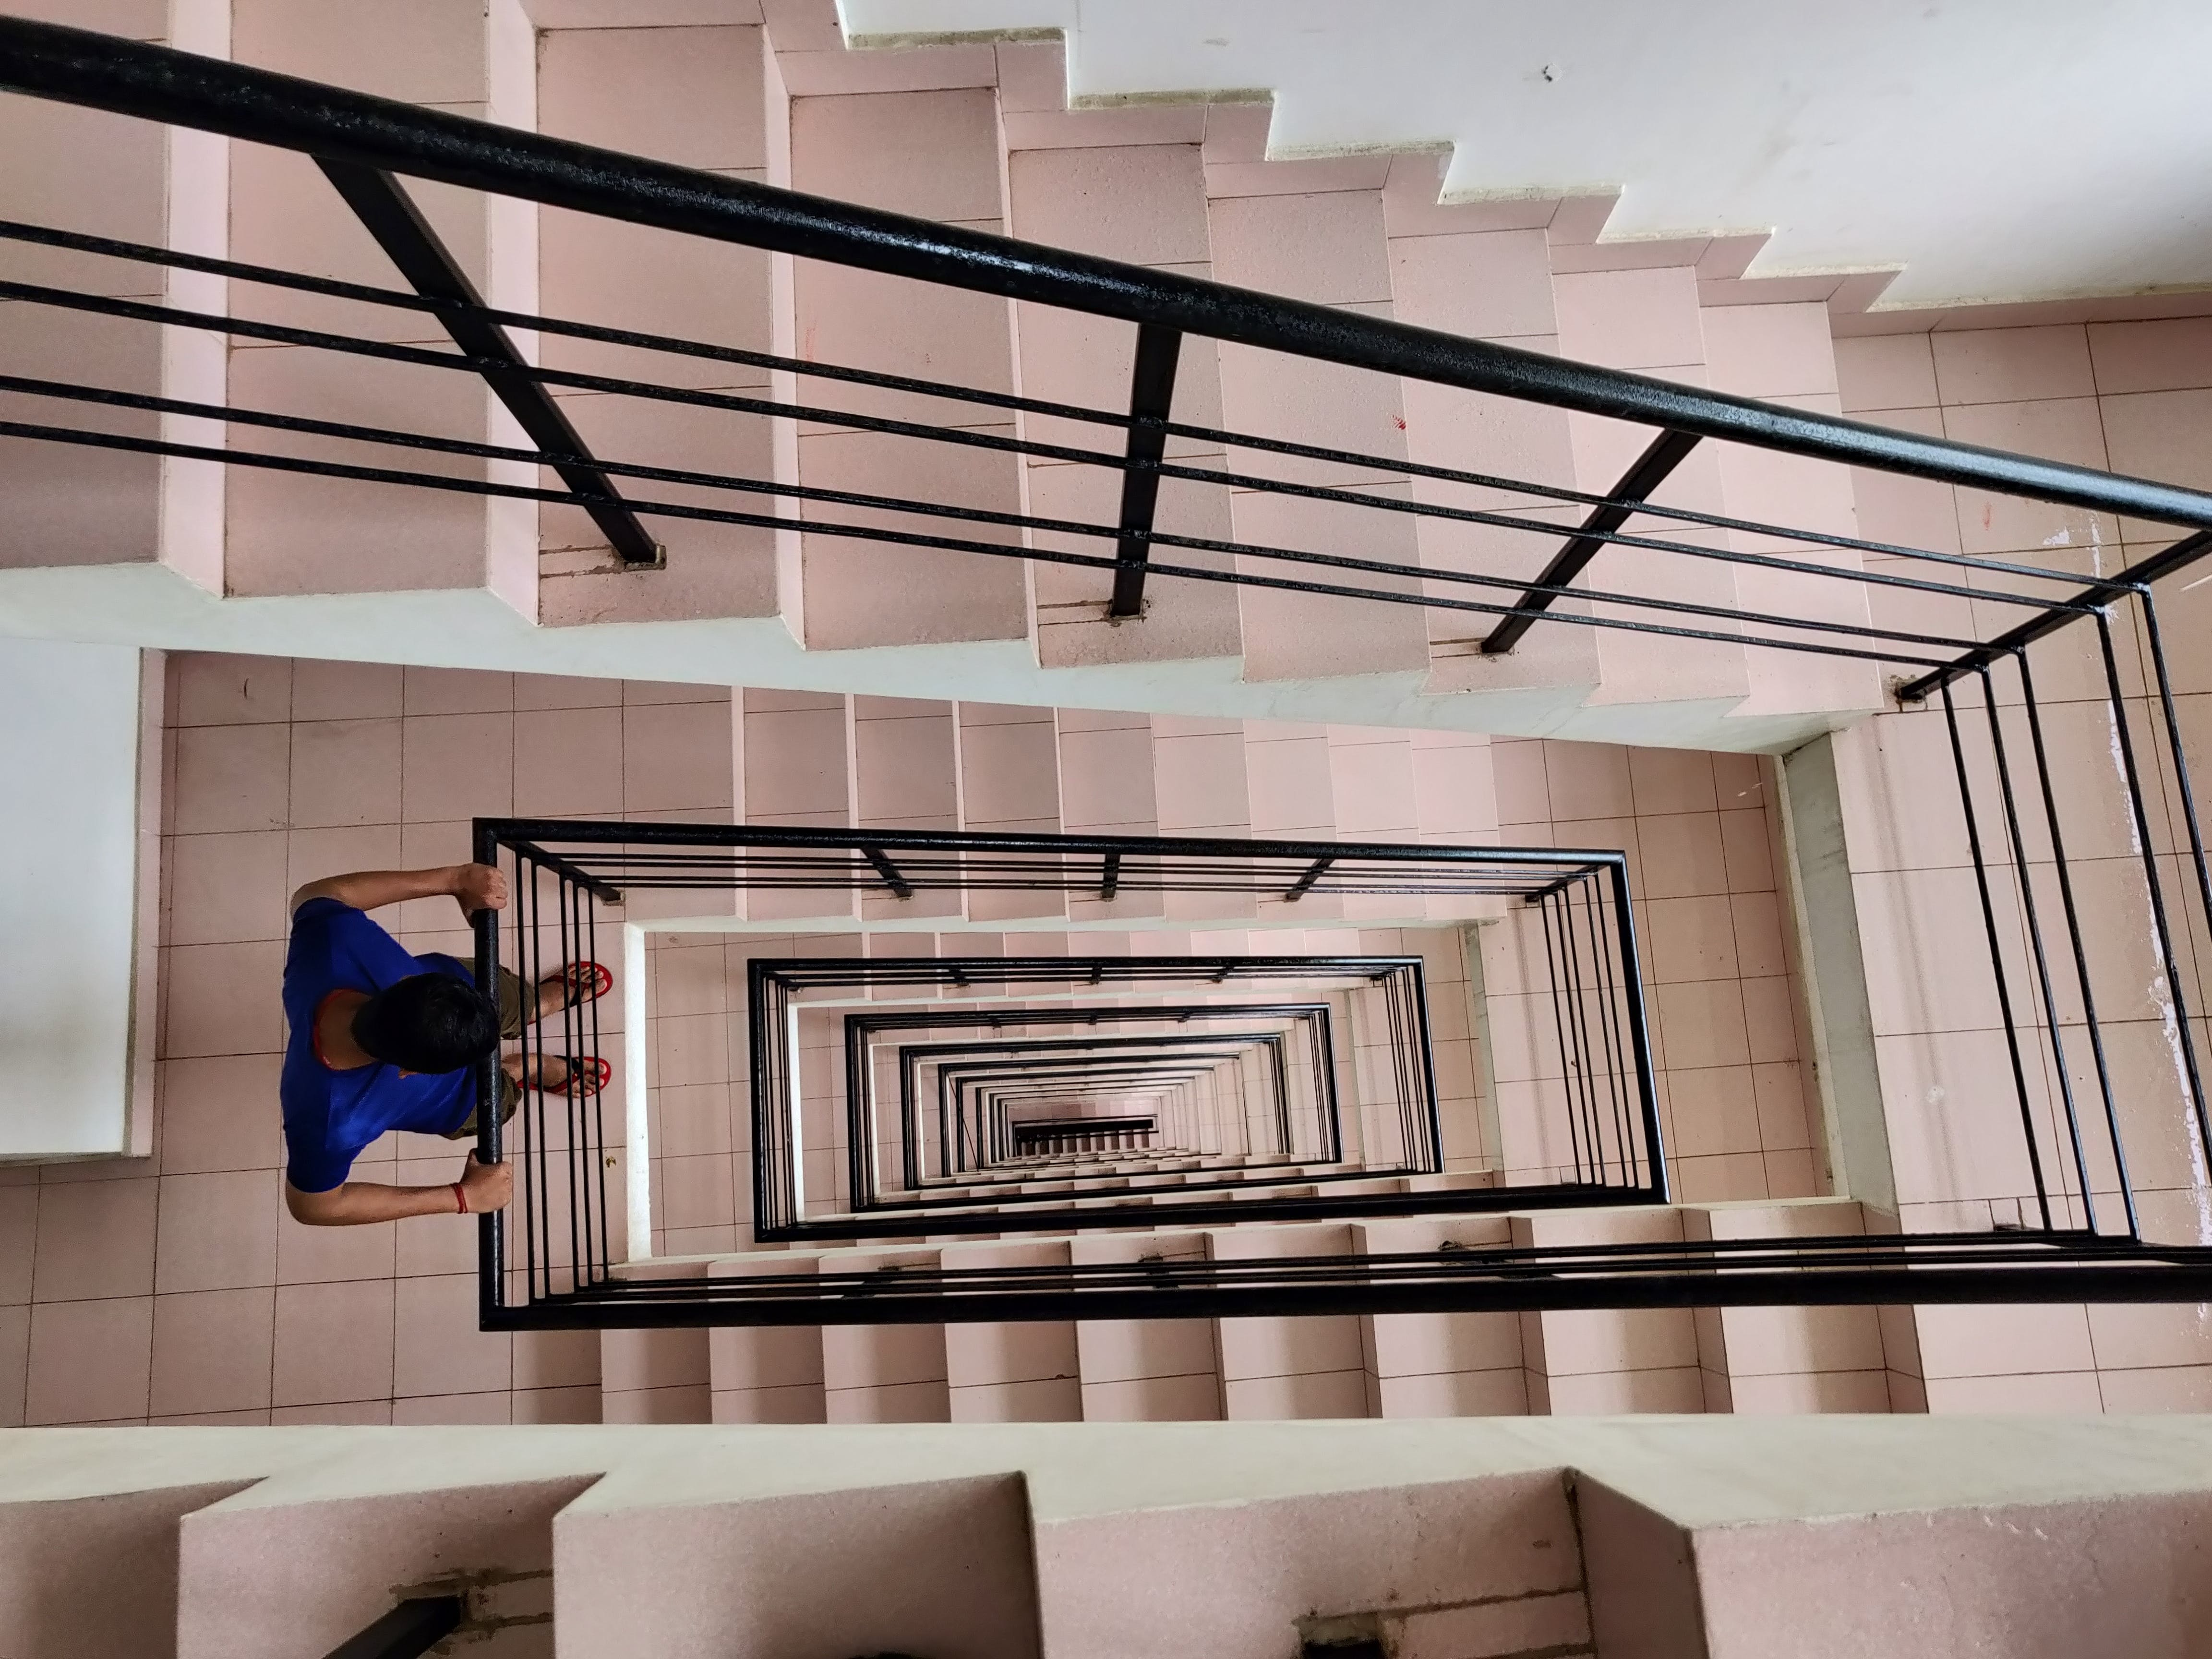 Man Looking Downwards of Stairs